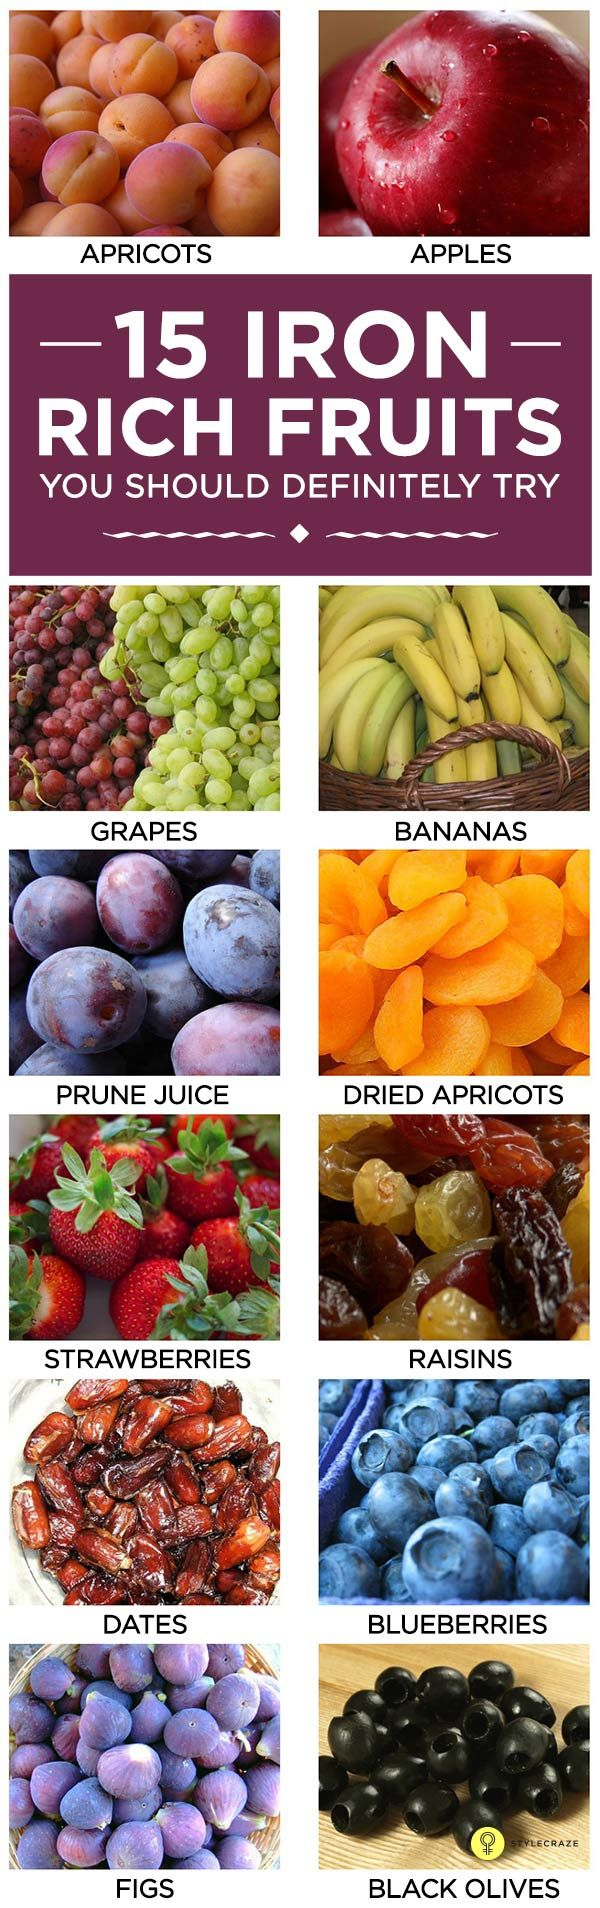 family guide for fruits and seeds